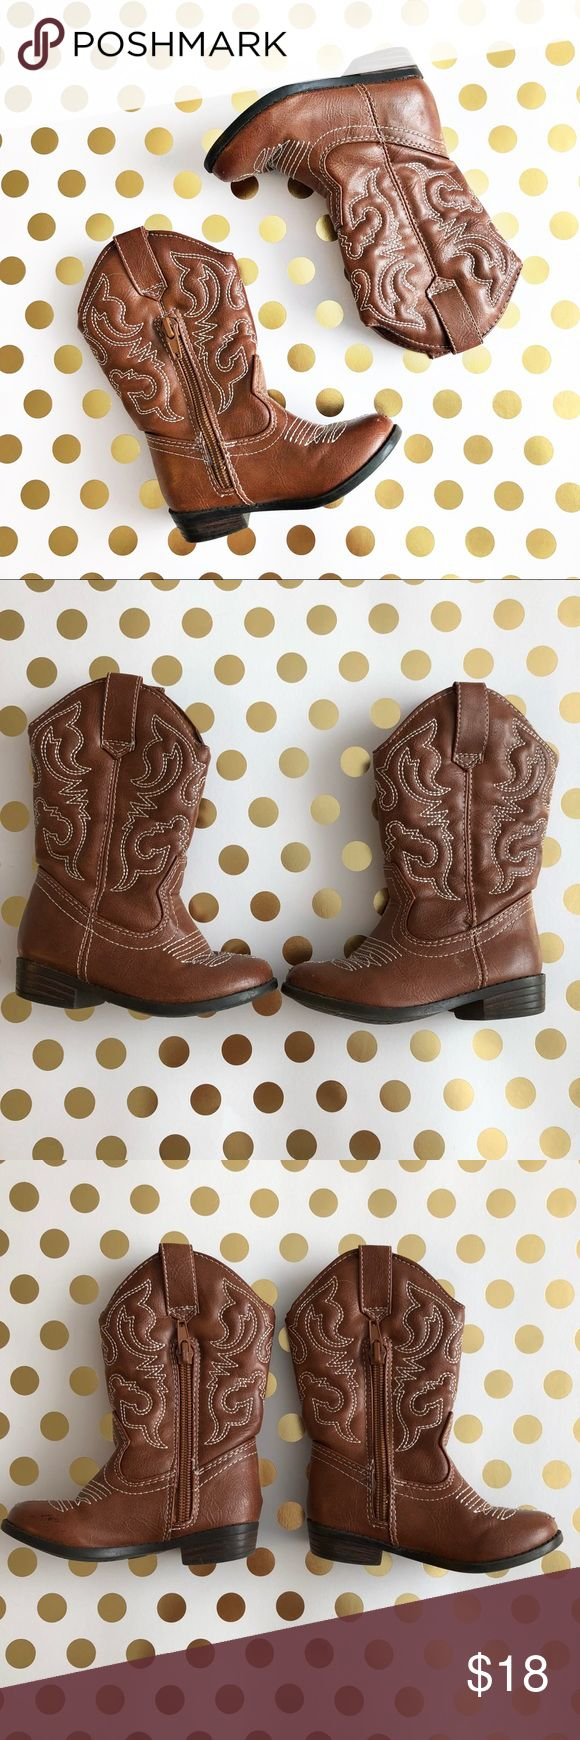 Toddler Cowboy Boots Open to offers.  No trades Shoes Boots